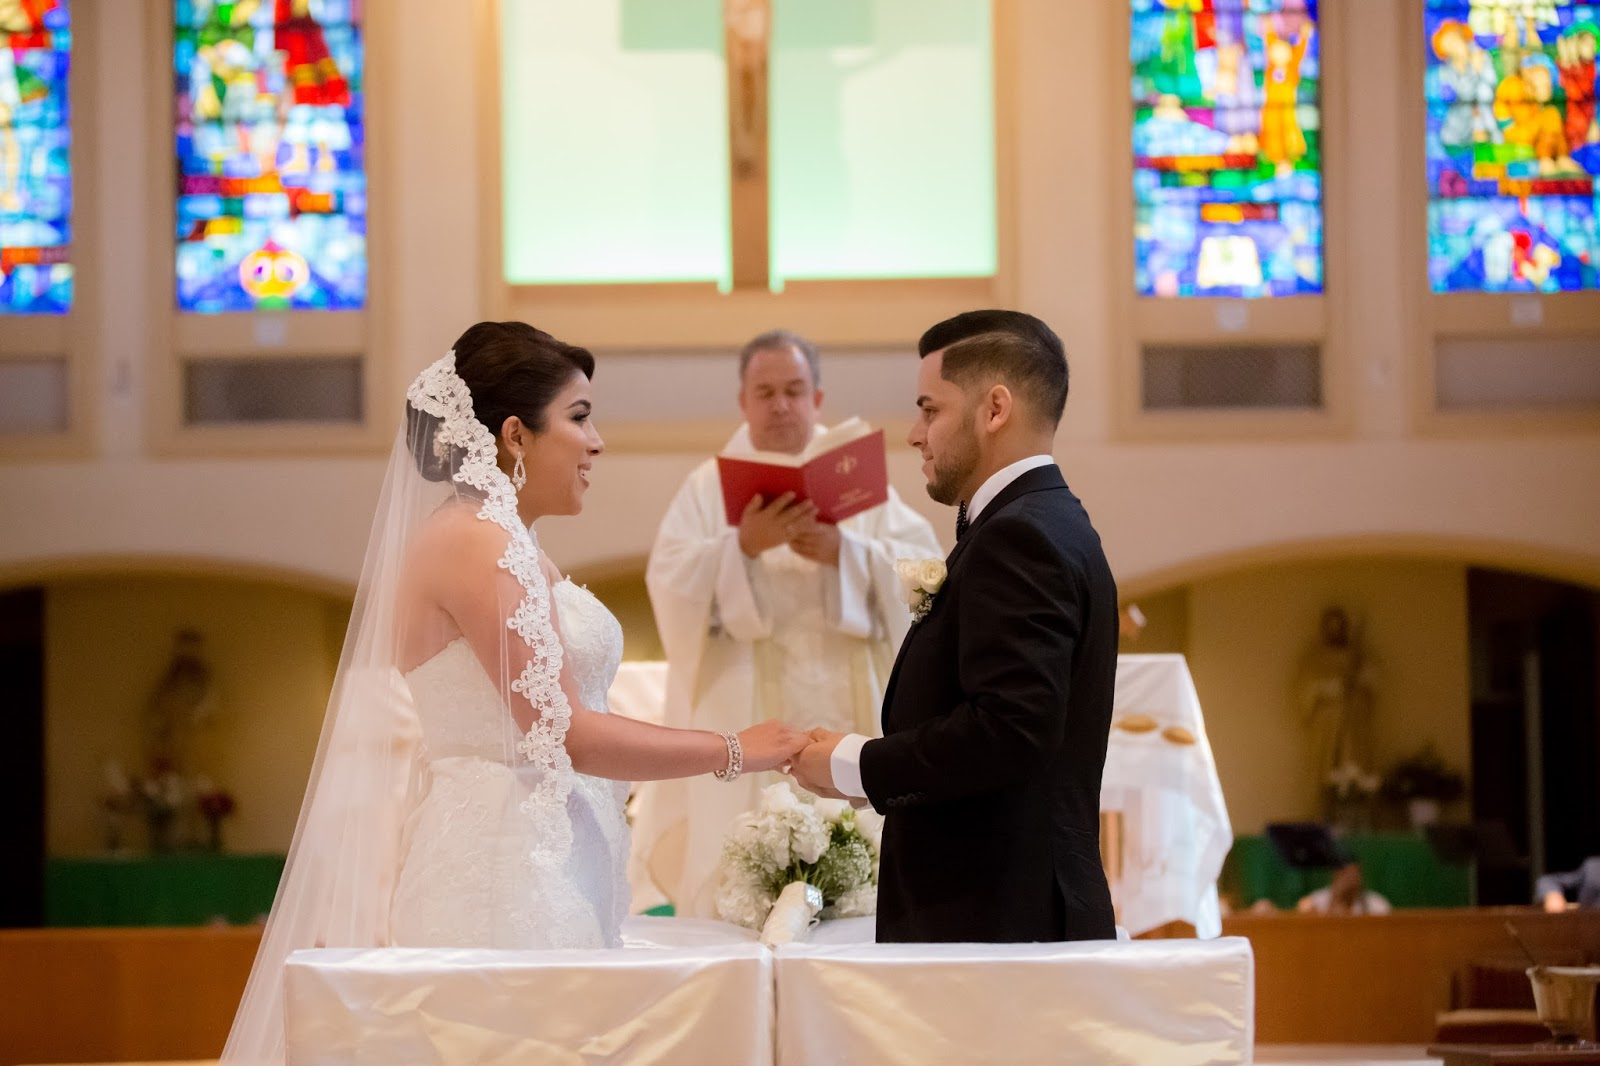 Bride and Groom join hands at the Altar